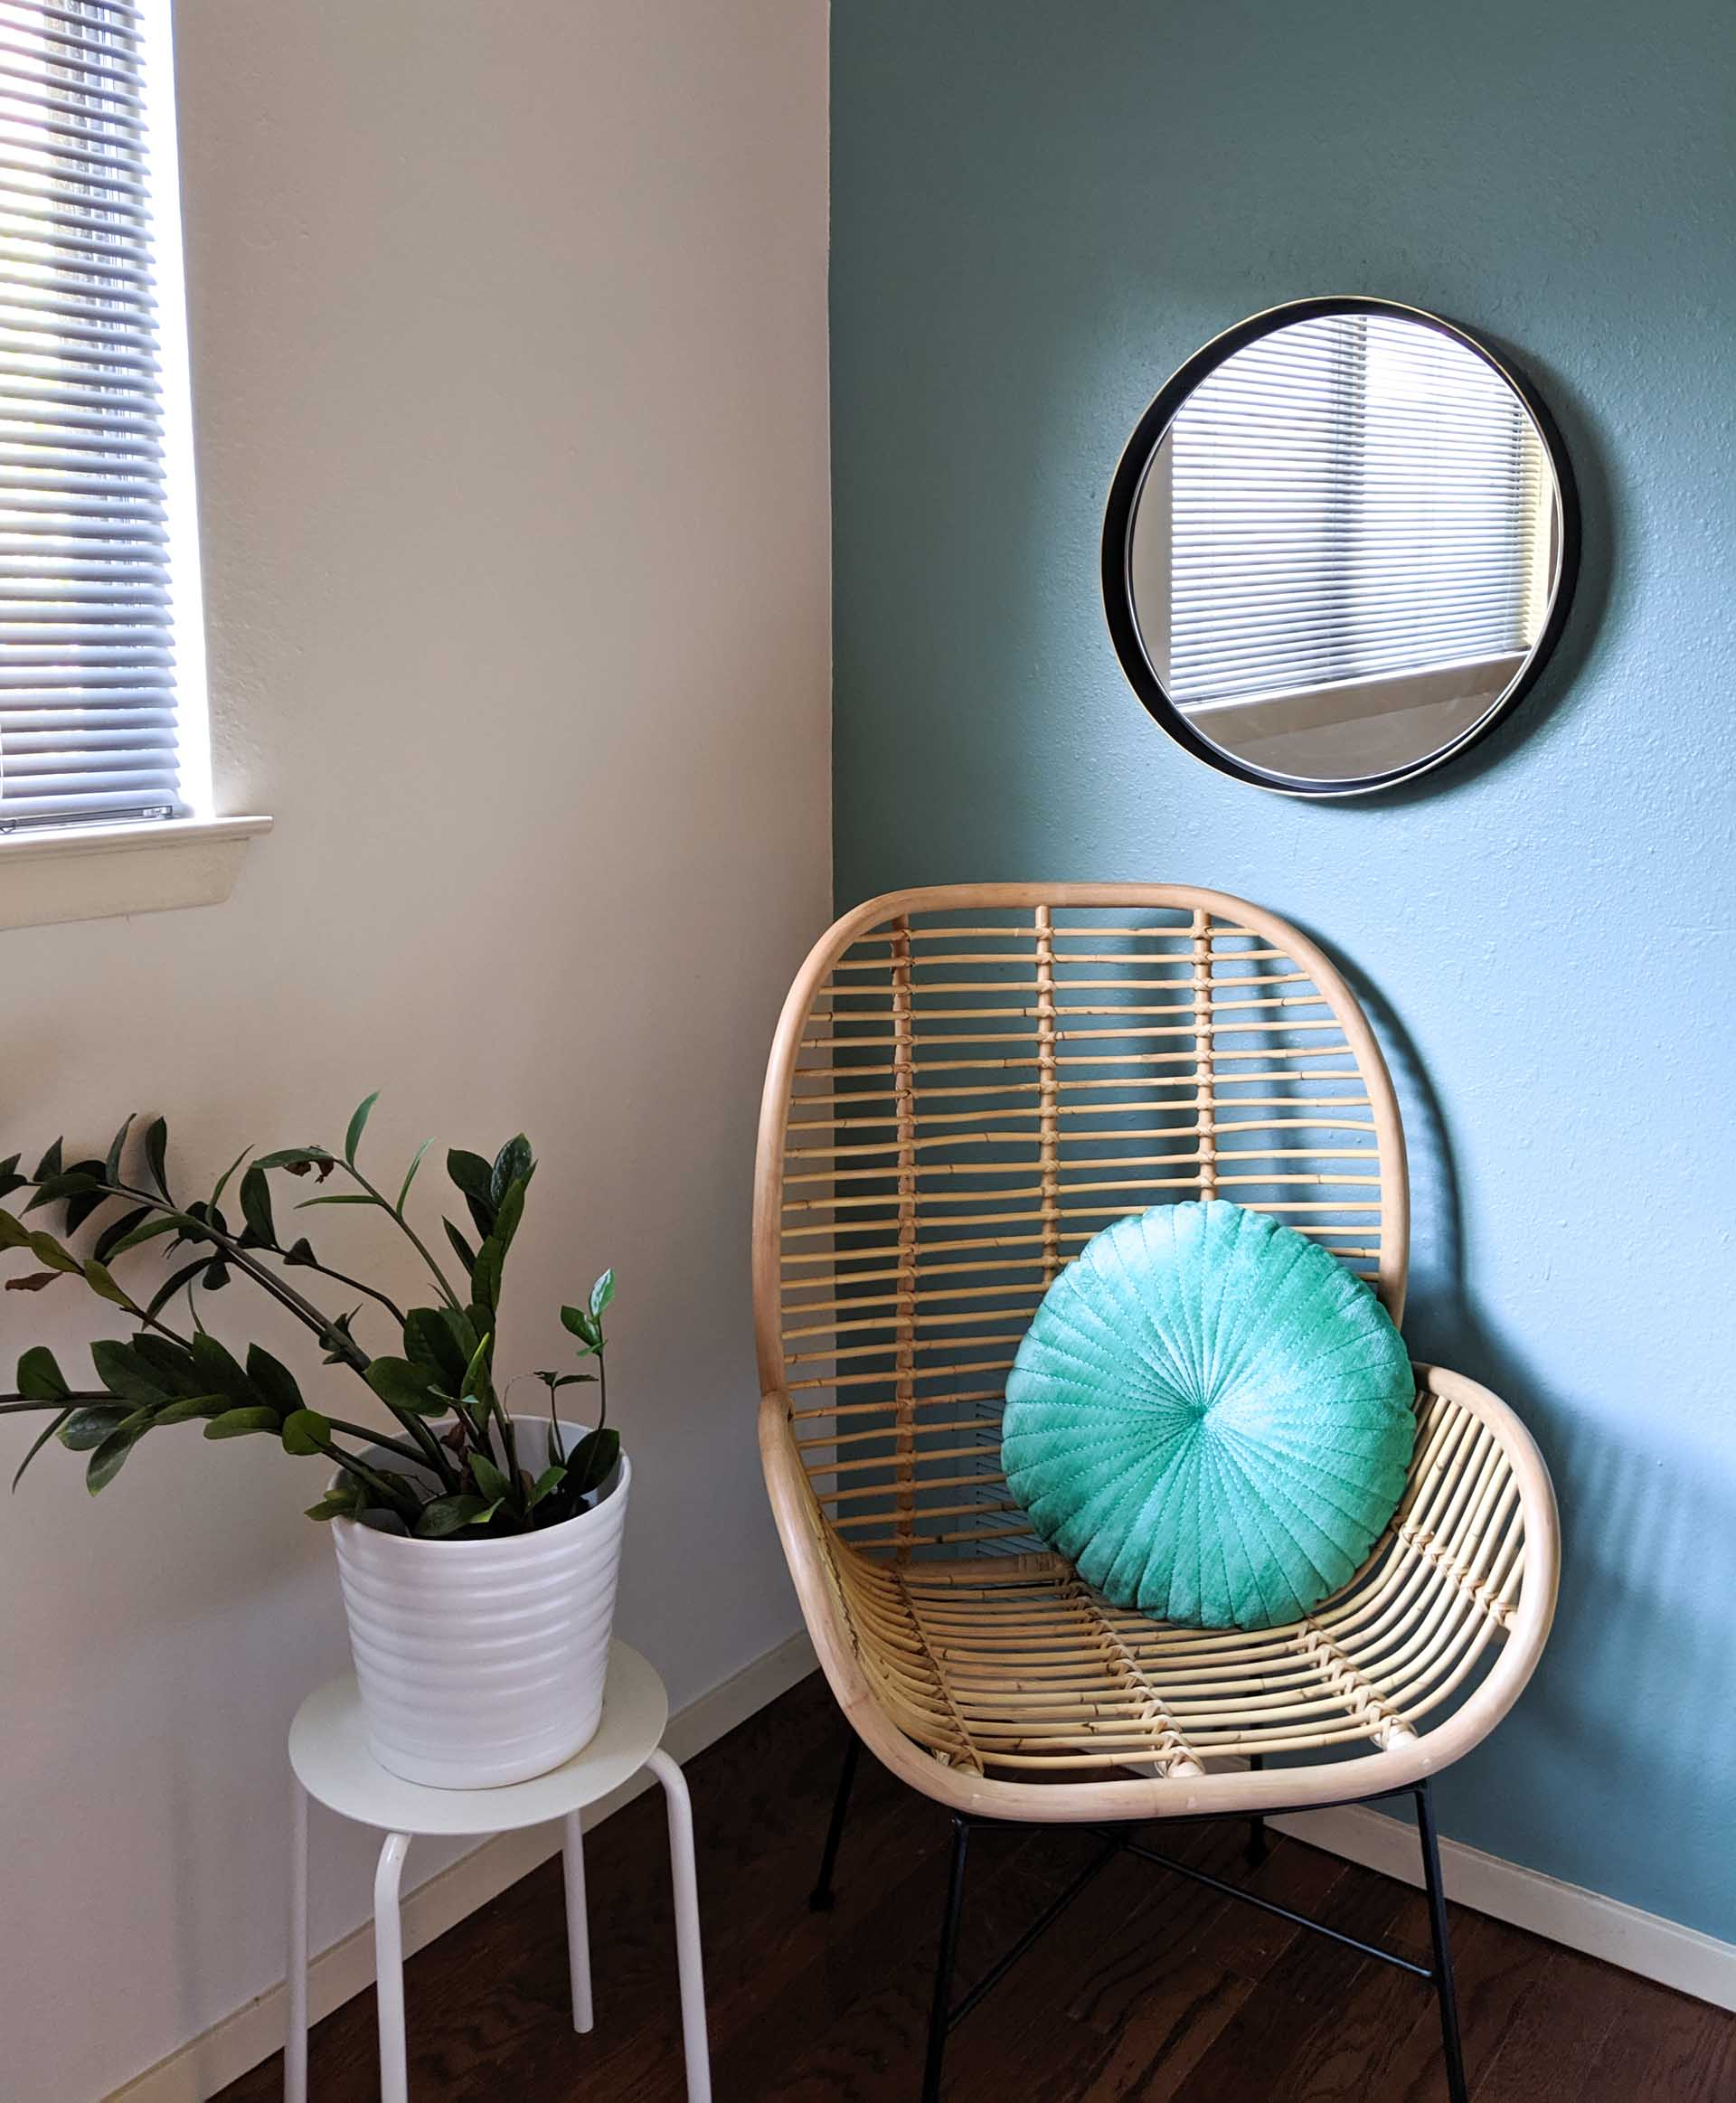 Rattan chair in a blue room